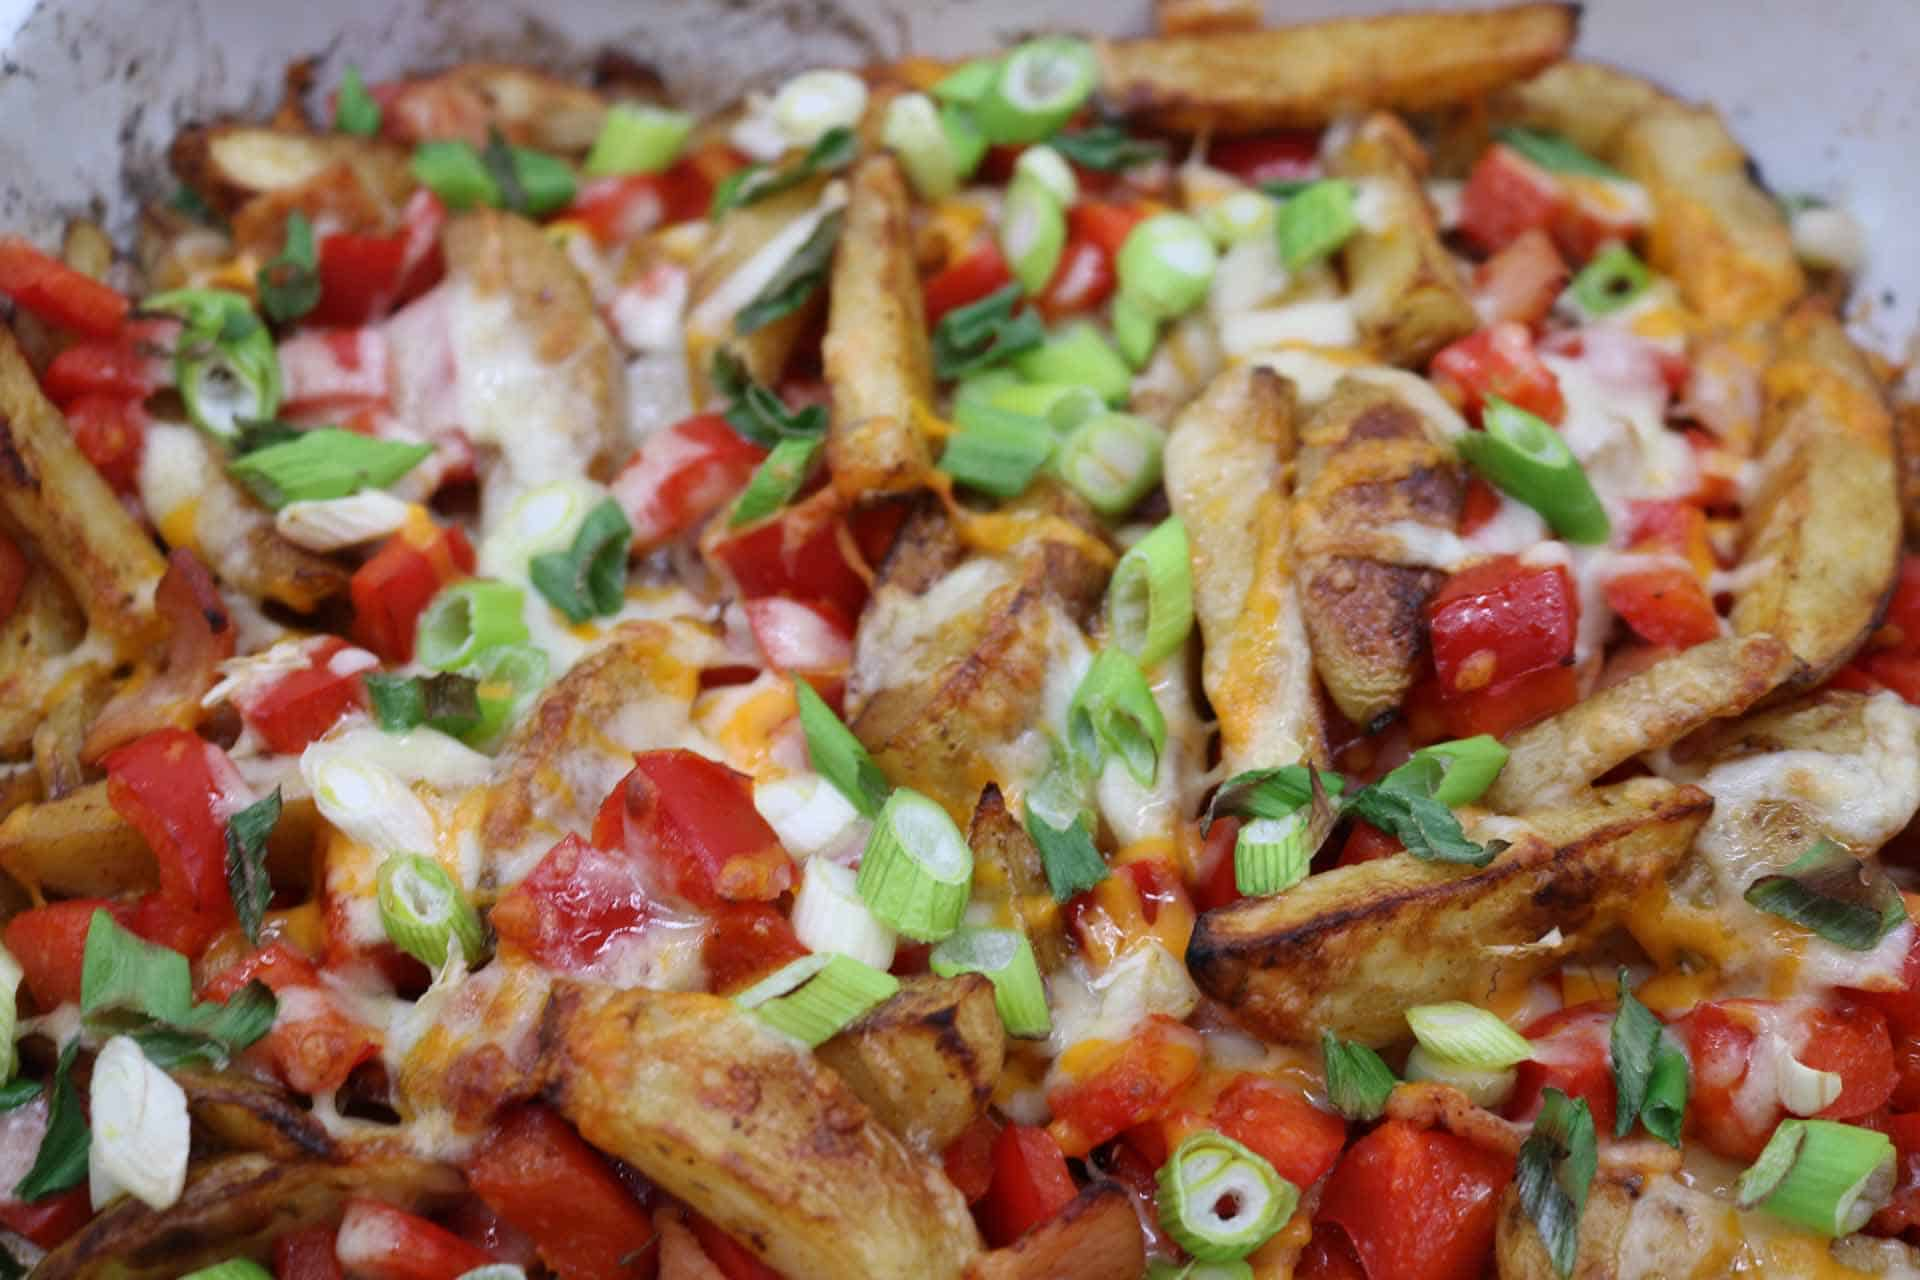 Dirty Fries, Dirty Fries